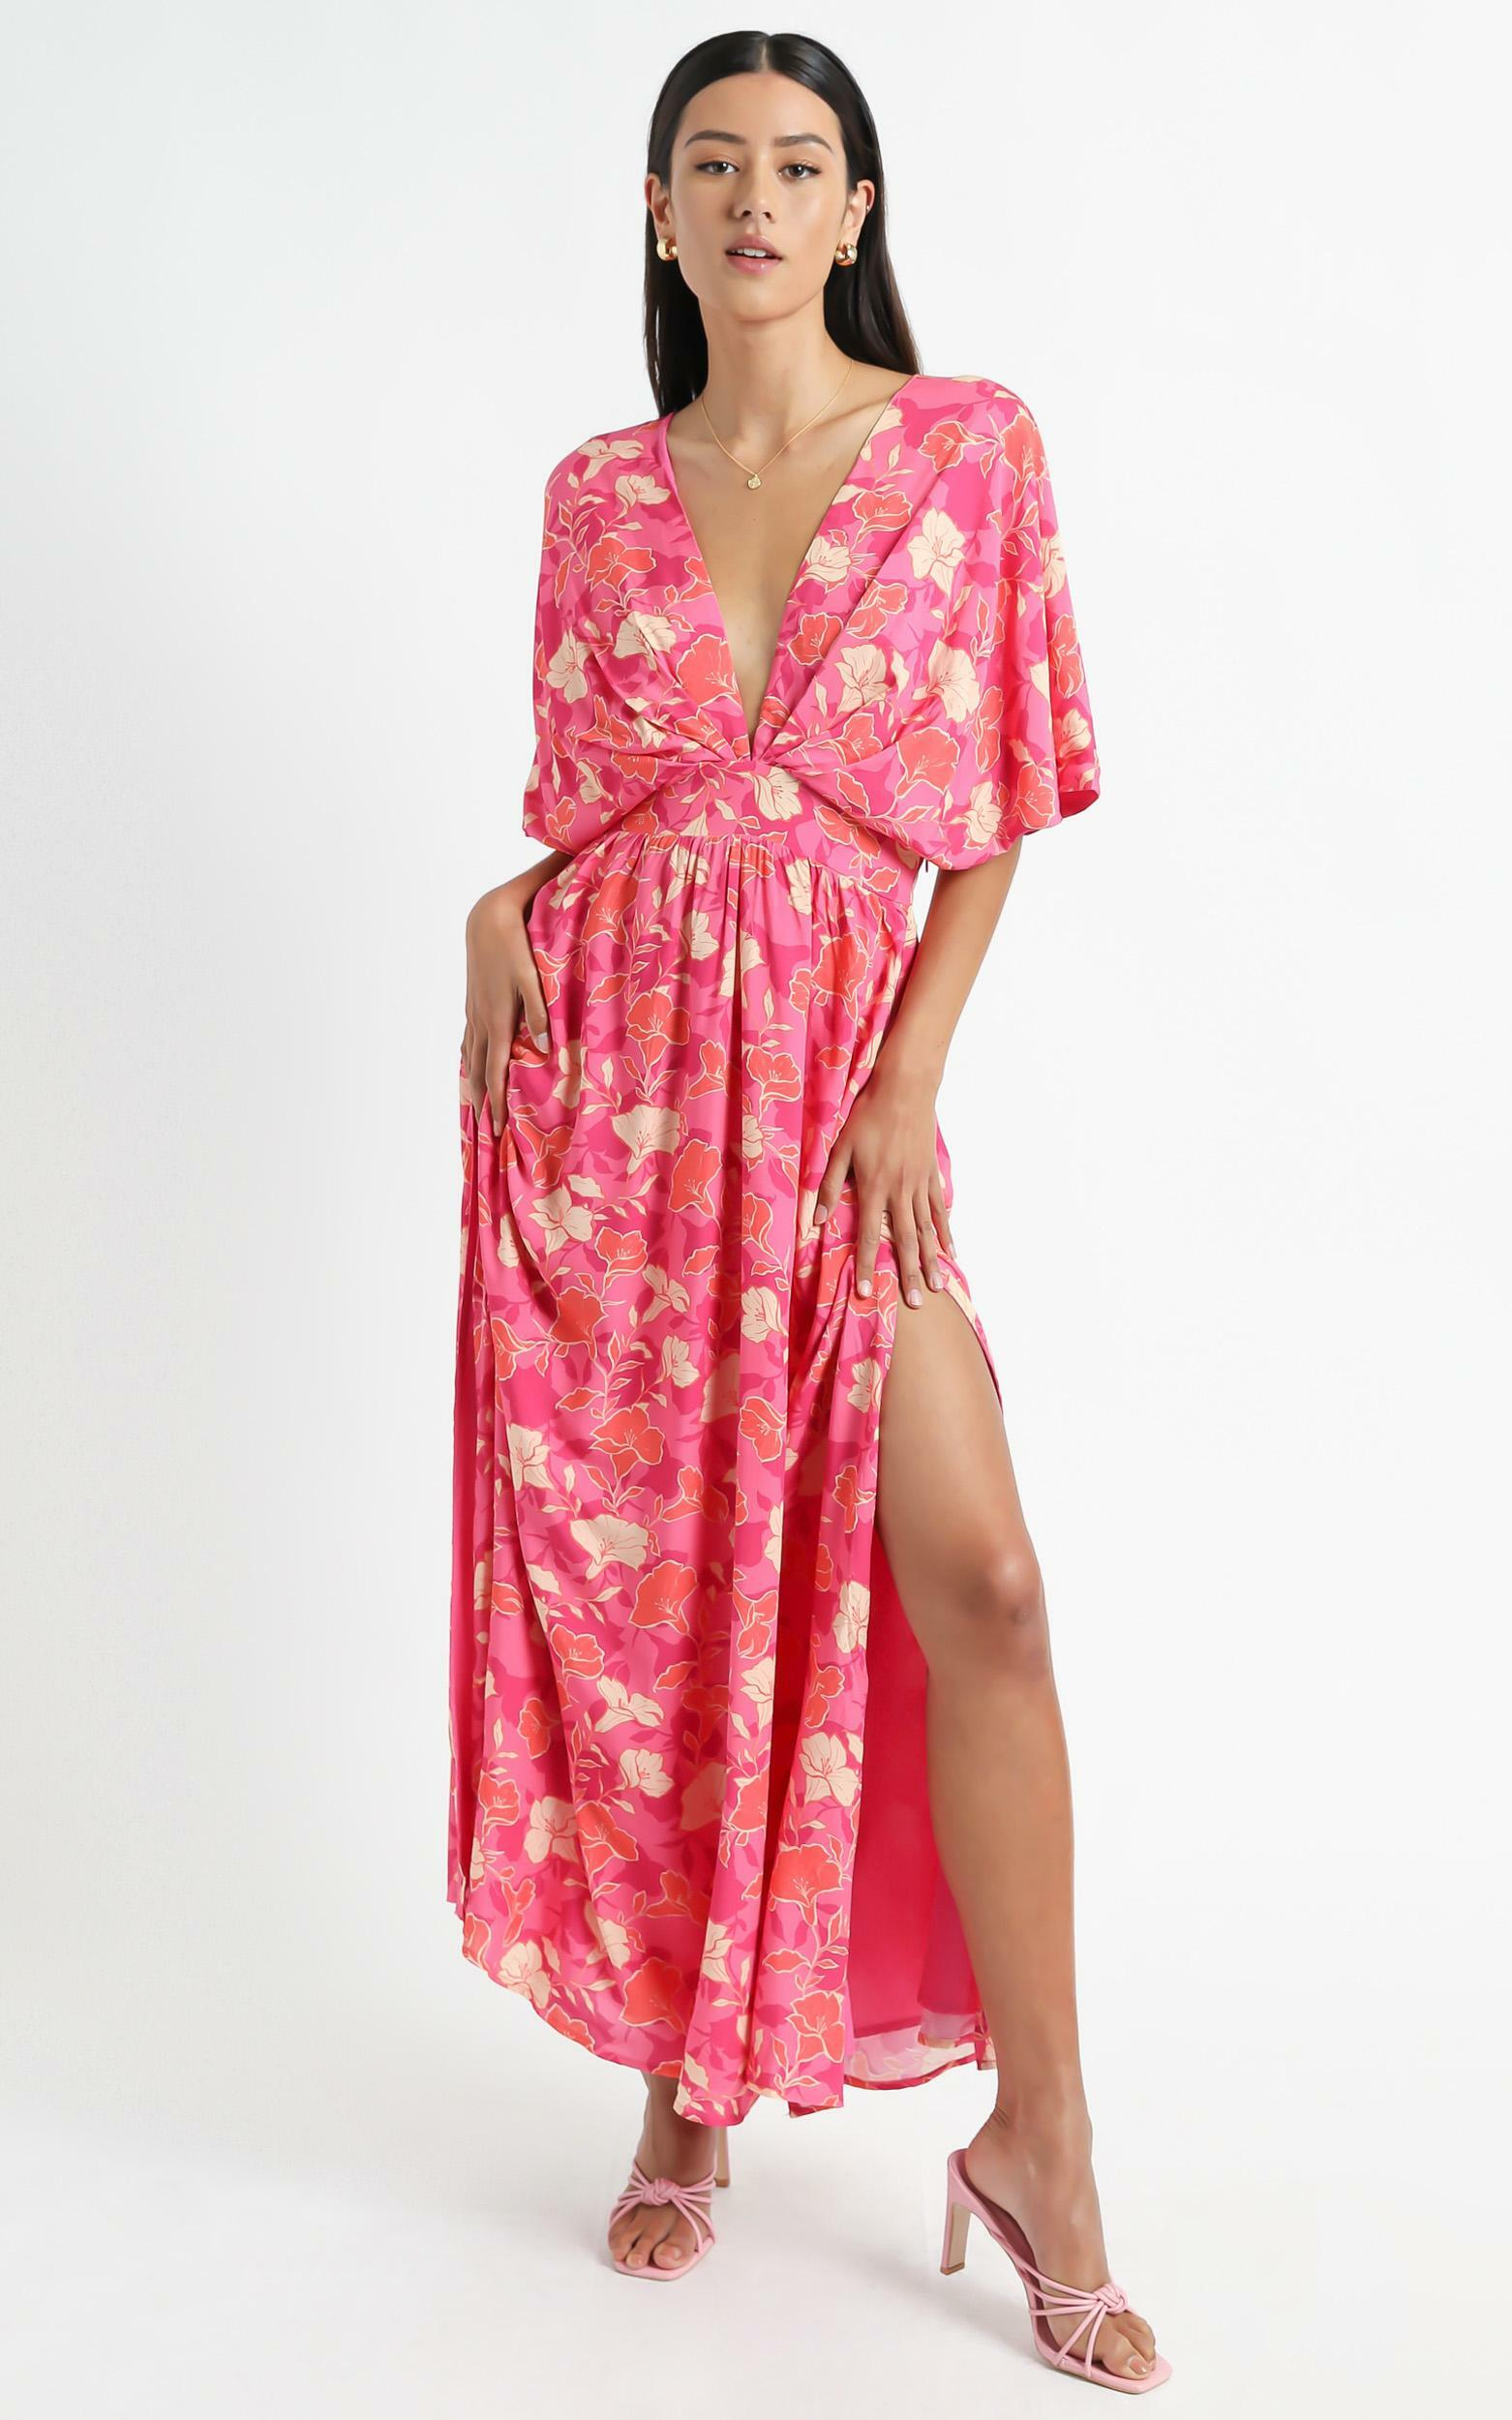 Ella Dress in Berry Floral - 4 (XXS), Pink, hi-res image number null